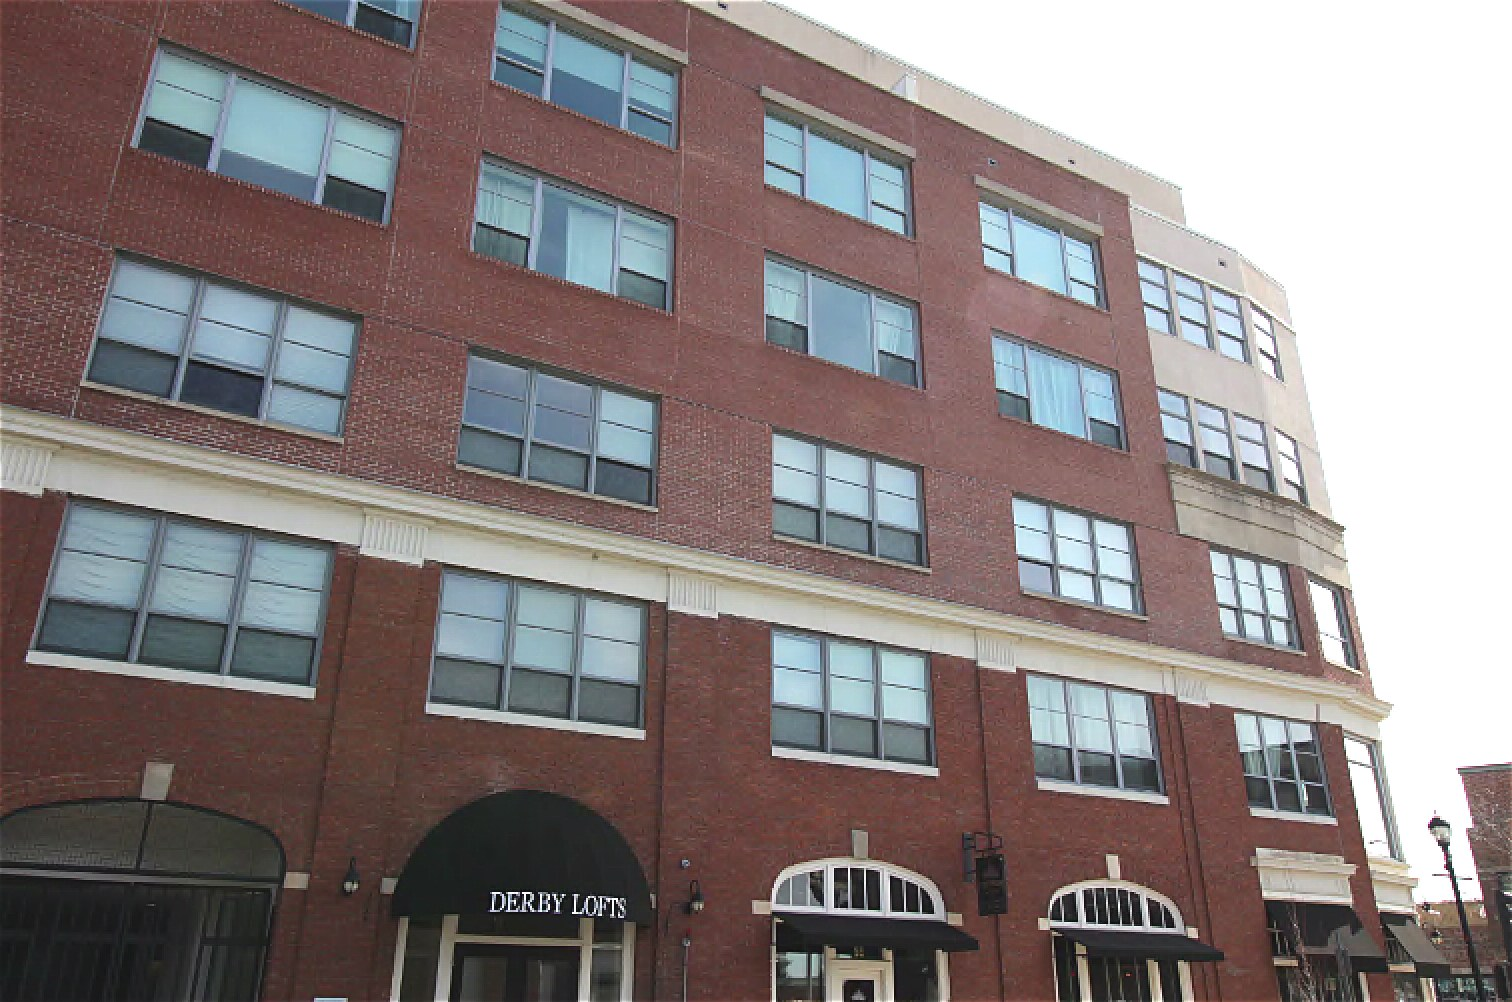 derby lofts salem ma current listings u0026 pictures